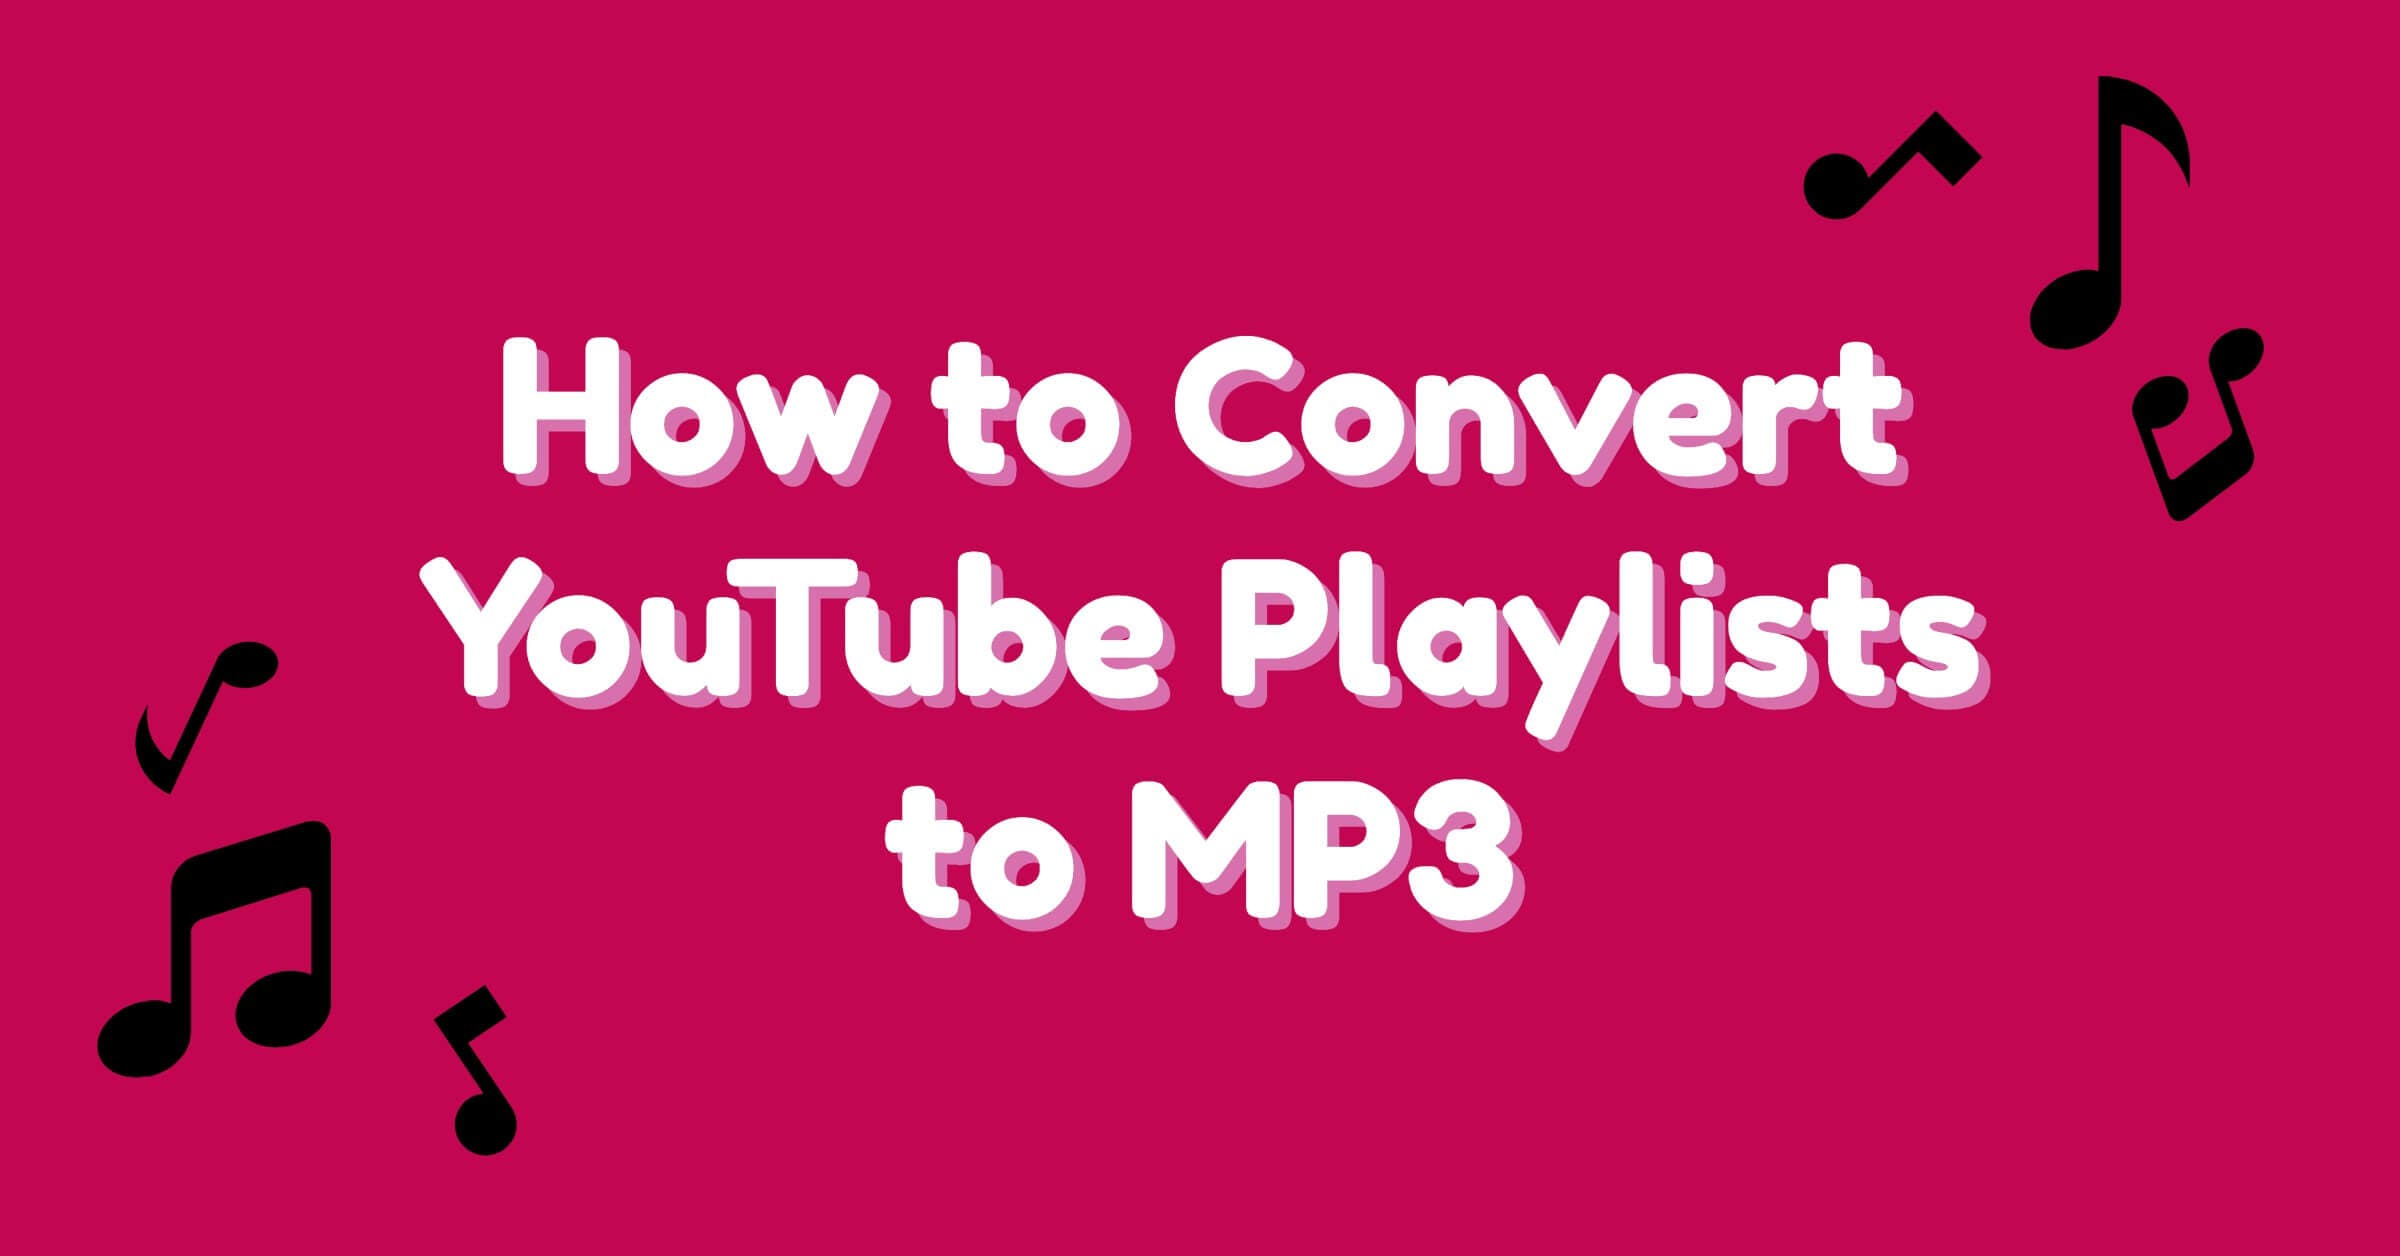 How to Convert YouTube Playlist to MP3?